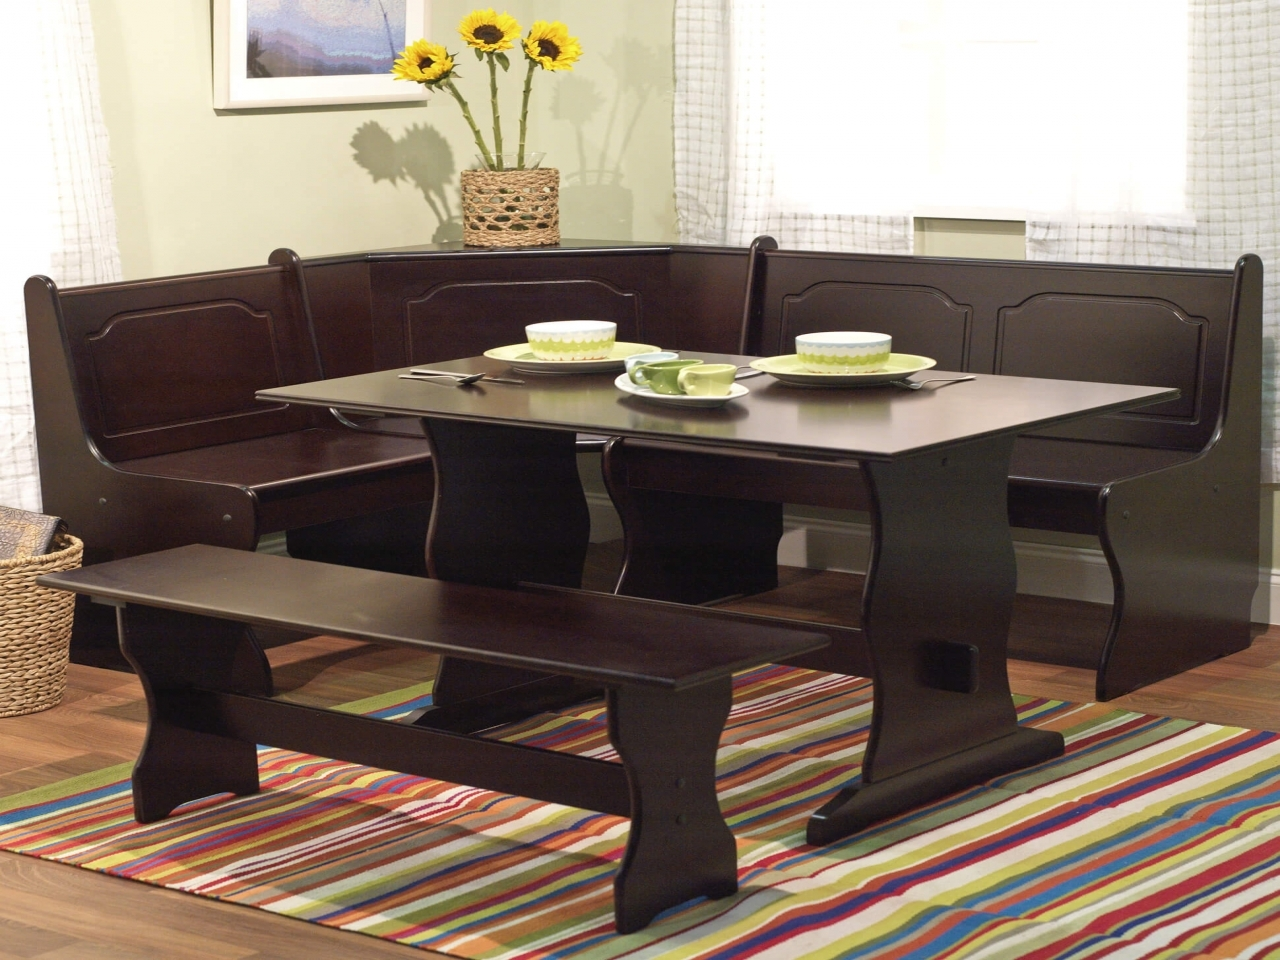 Table with storage bench bench seating country kitchen